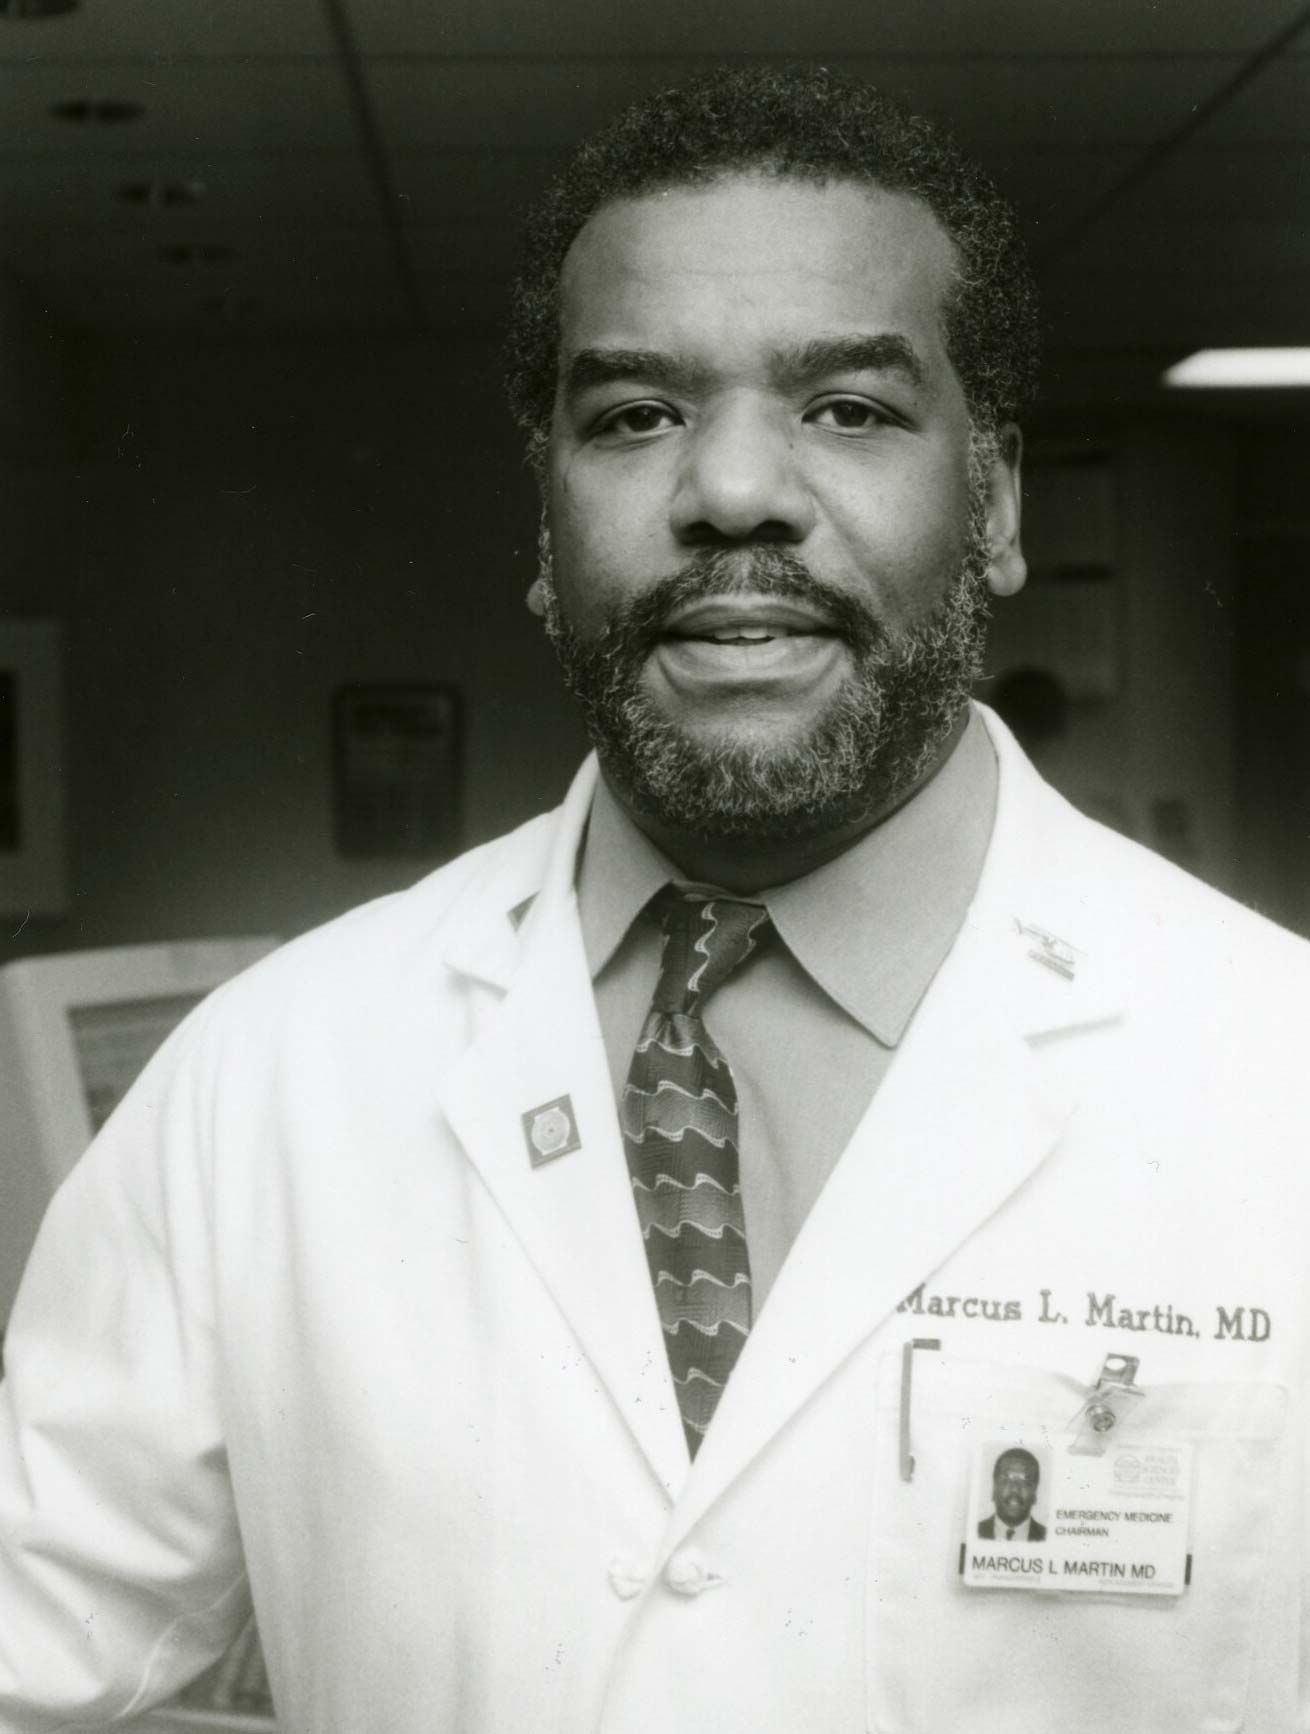 Martin, here in 1997, was the first African American to chair a clinical department at the UVA School of Medicine. (Photo courtesy of Albert and Shirley Small Special Collections Library)